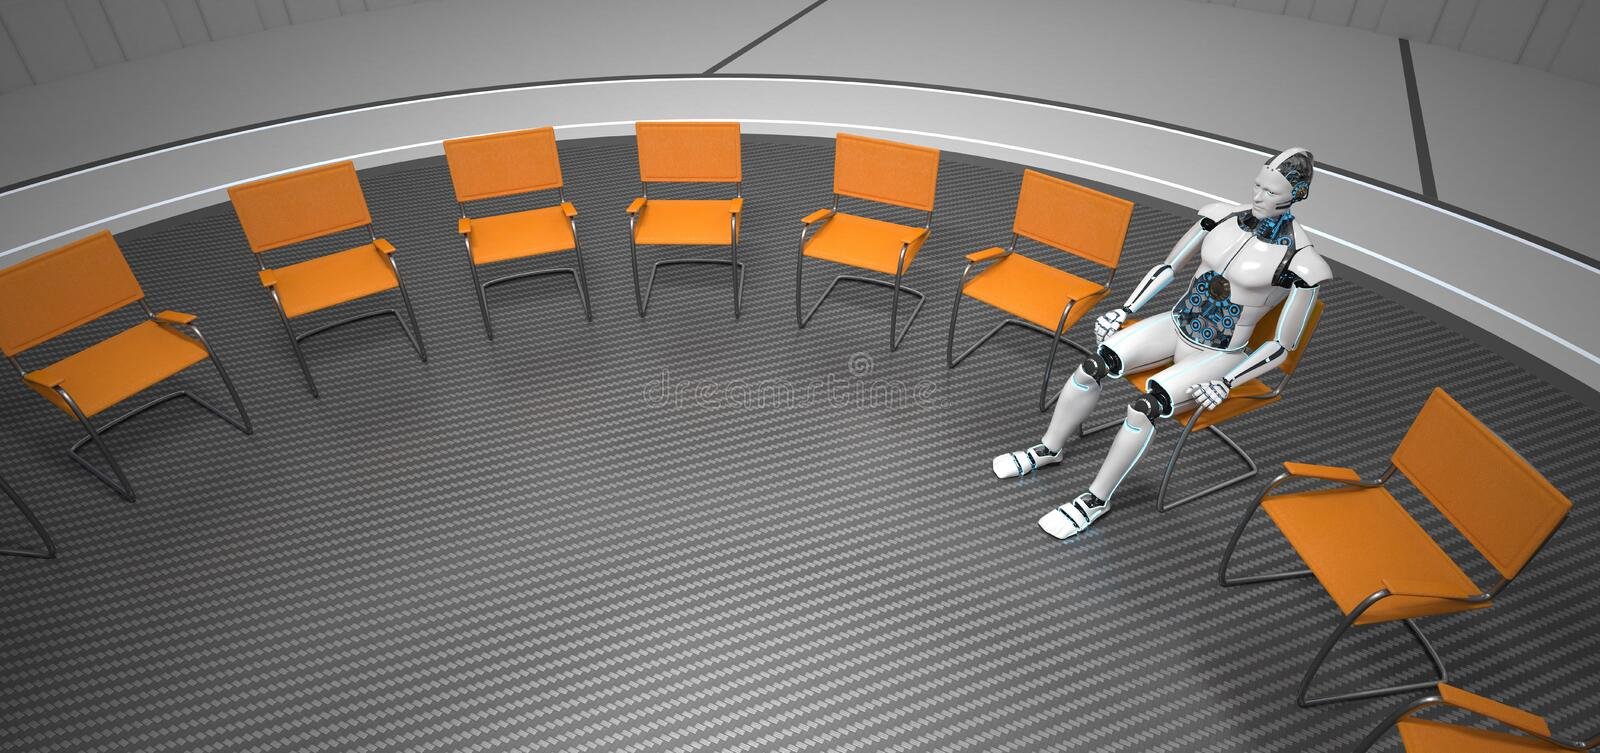 Humanoid Robot Futuristic Room royalty free stock photo